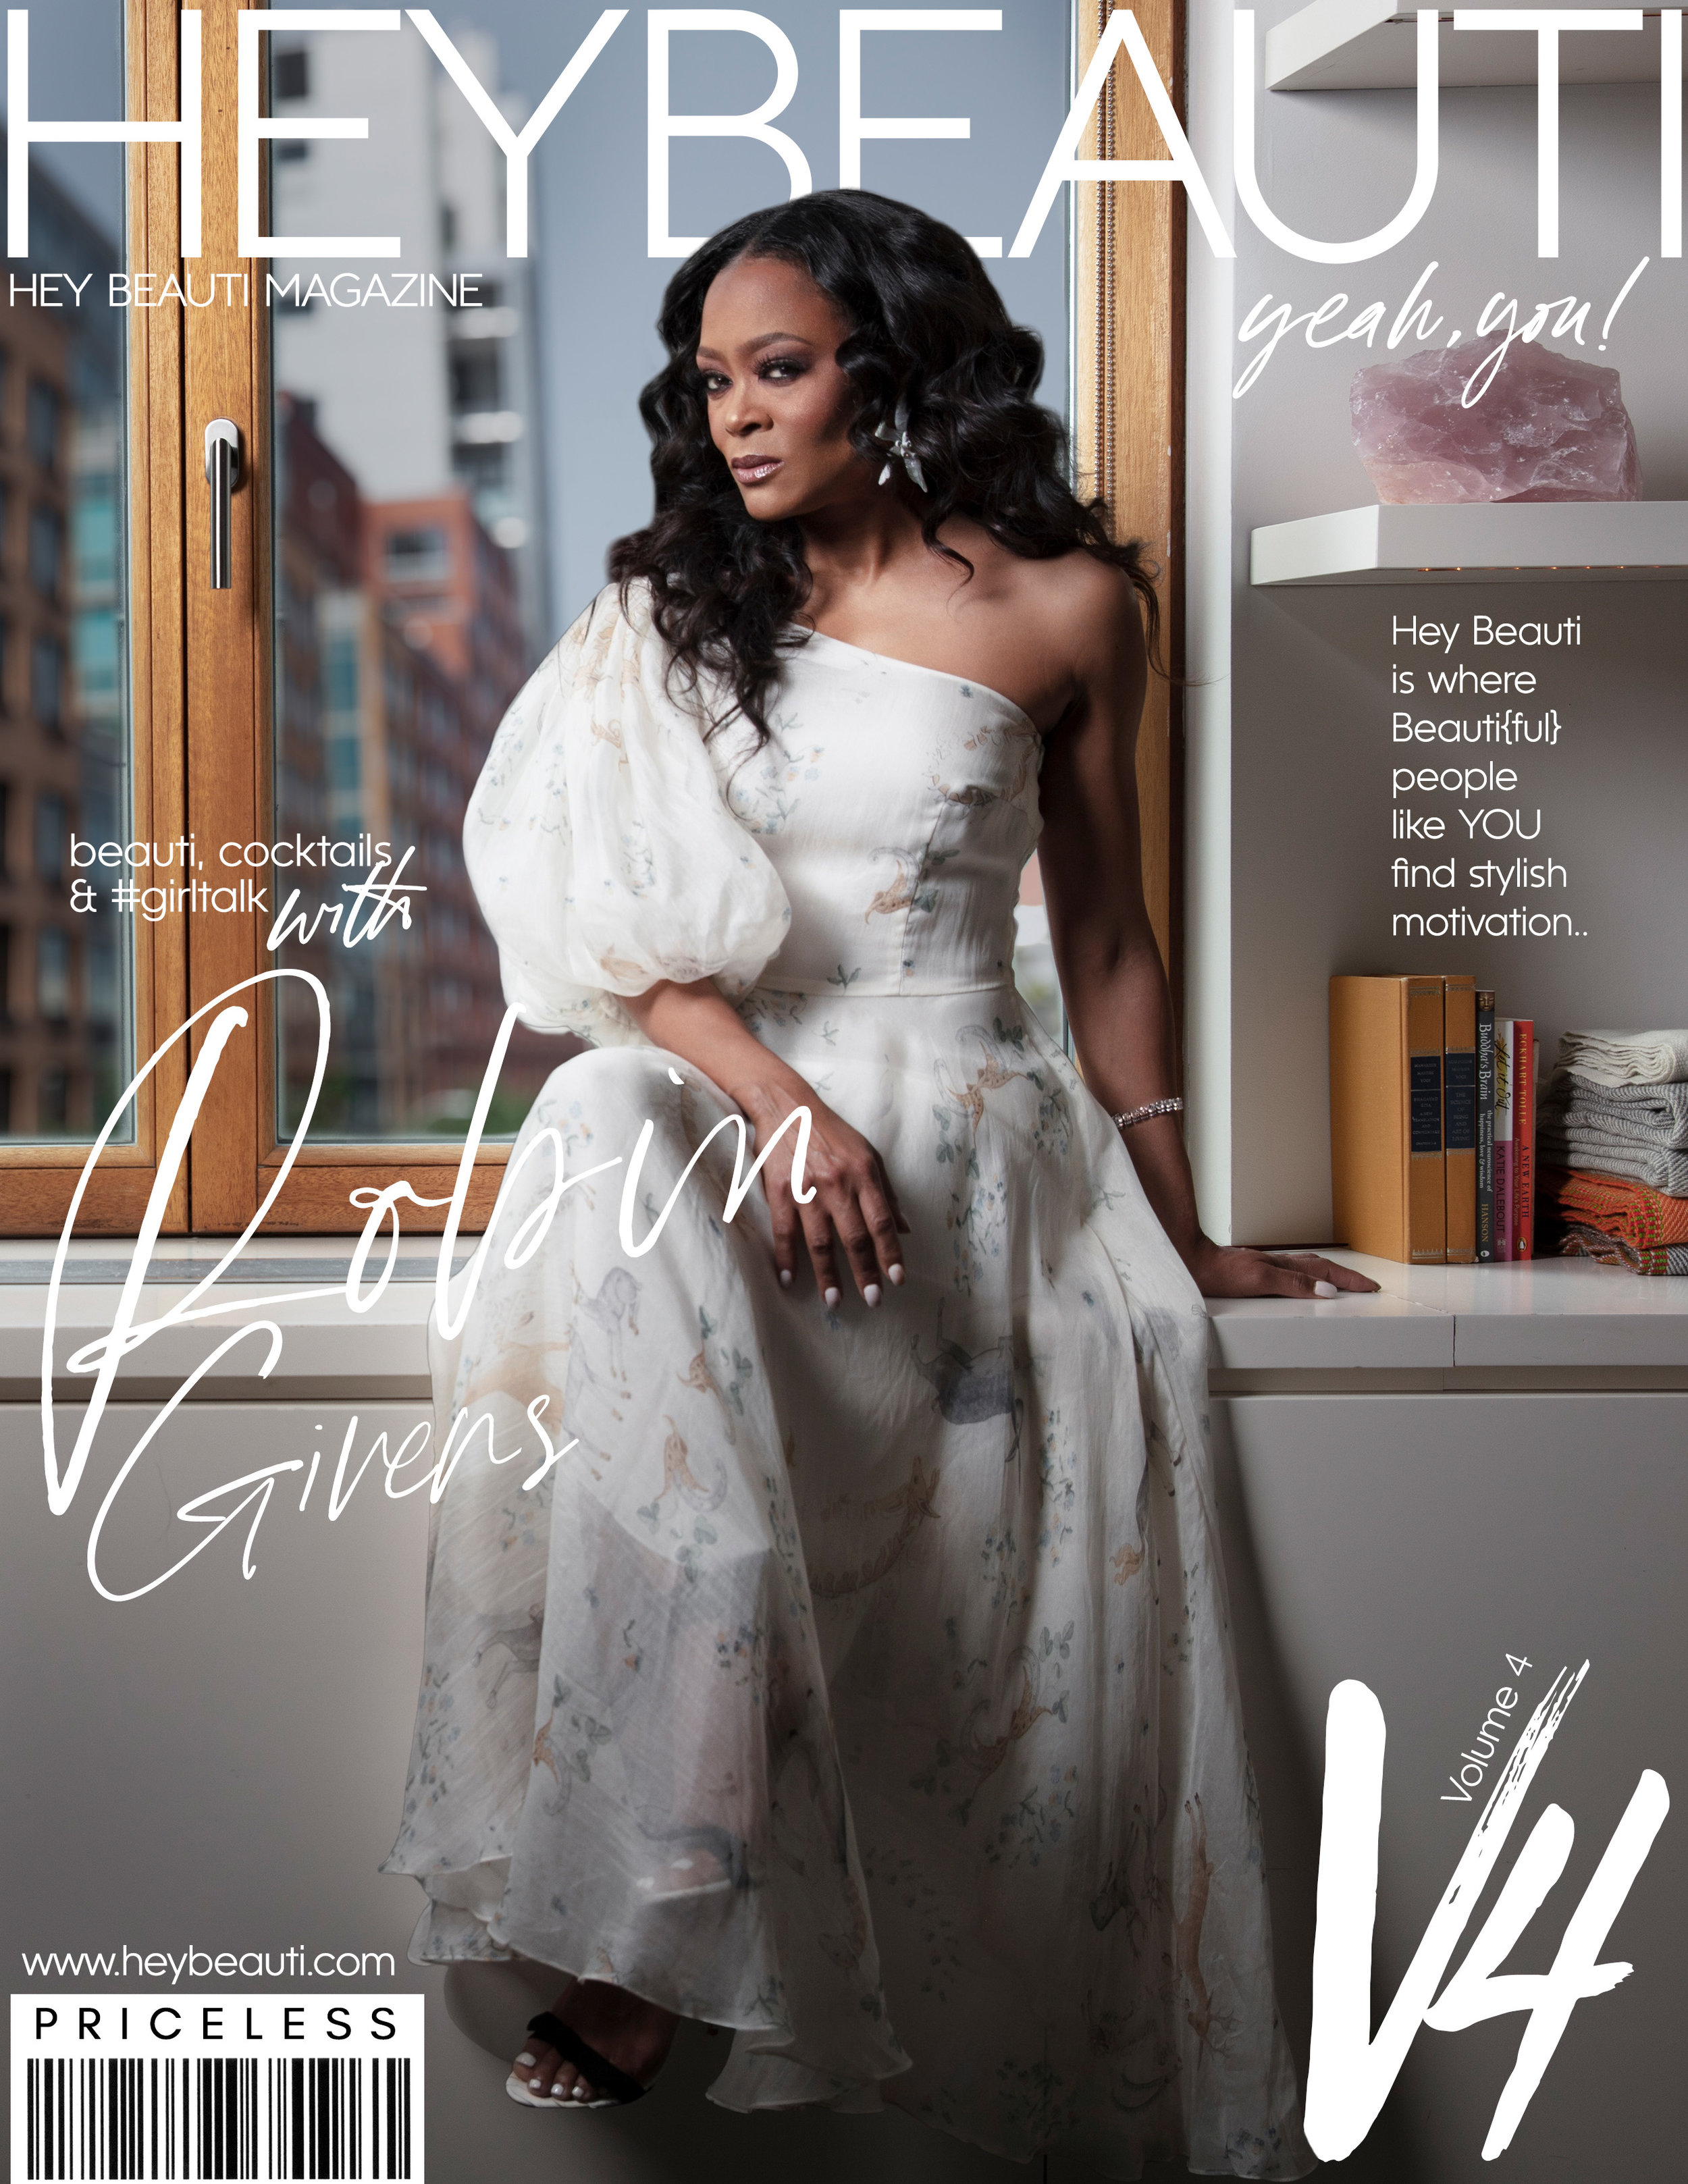 Introducing my latest Hey Beauti Magazine Cover Girl, actress Robin Givens - Hey Beauti is where Beauti{ful} people like YOU find stylish motivation.